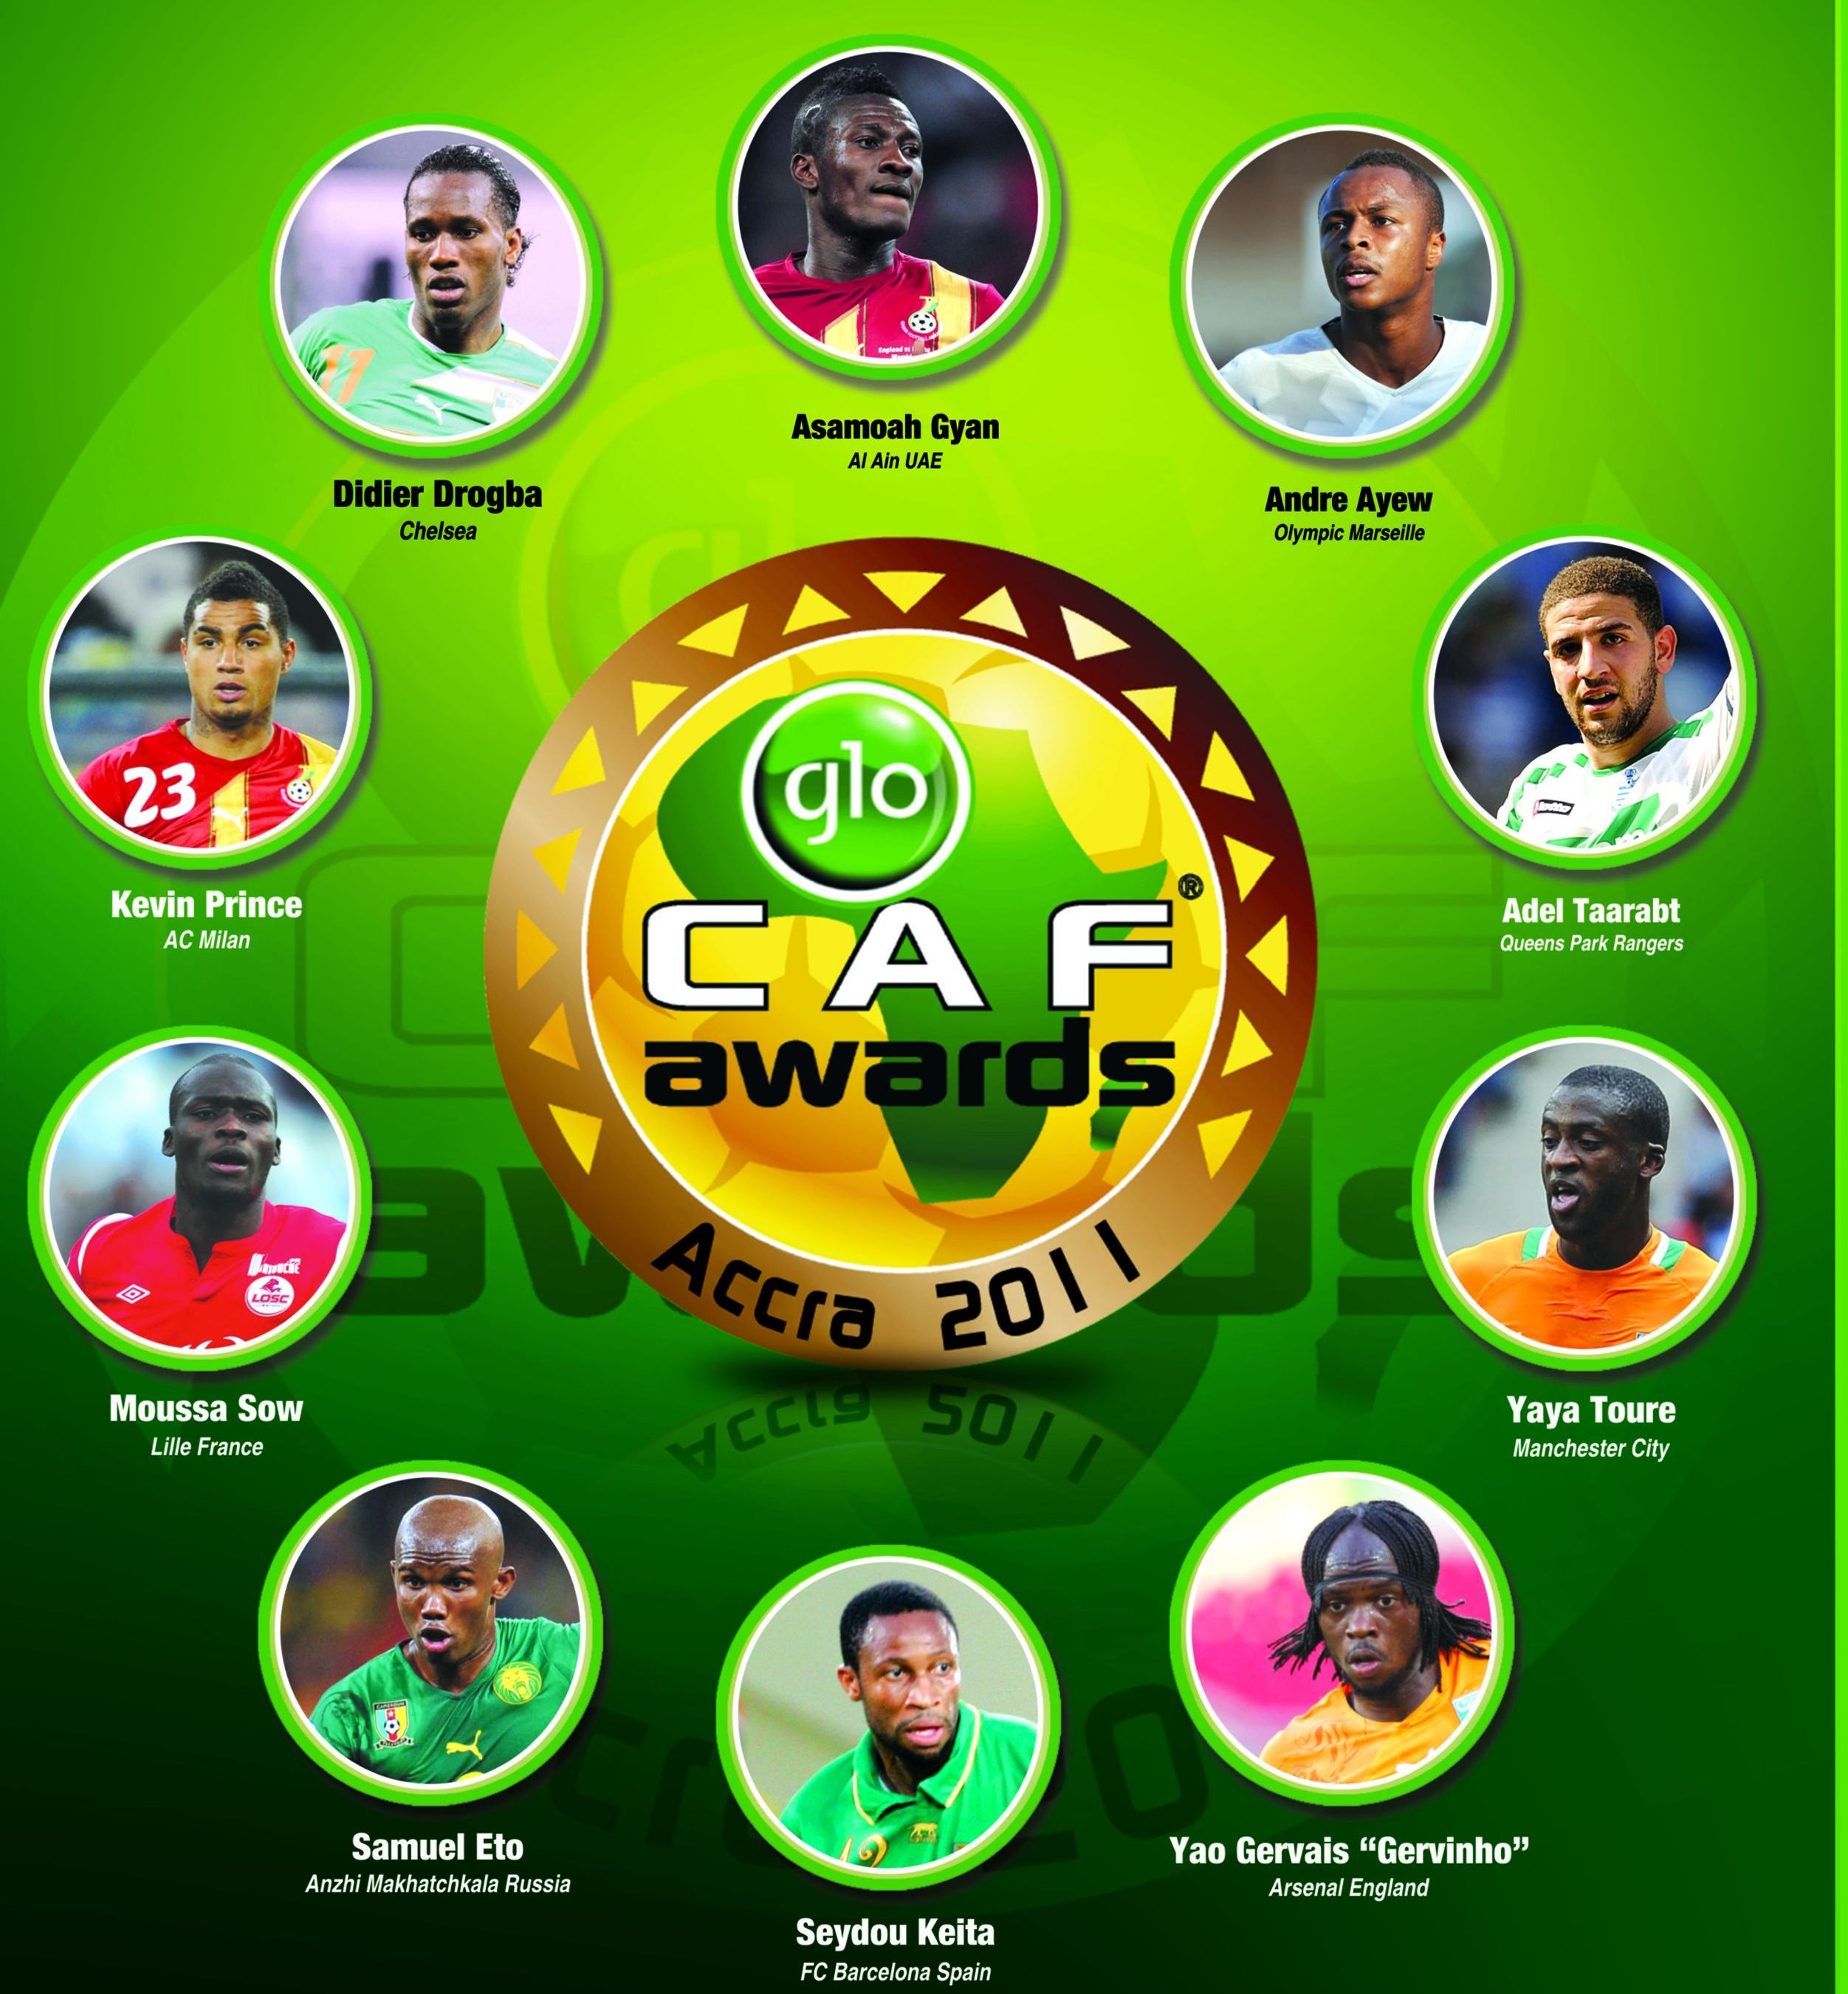 Ghanaians turn attention to prestigious Glo-Caf awards